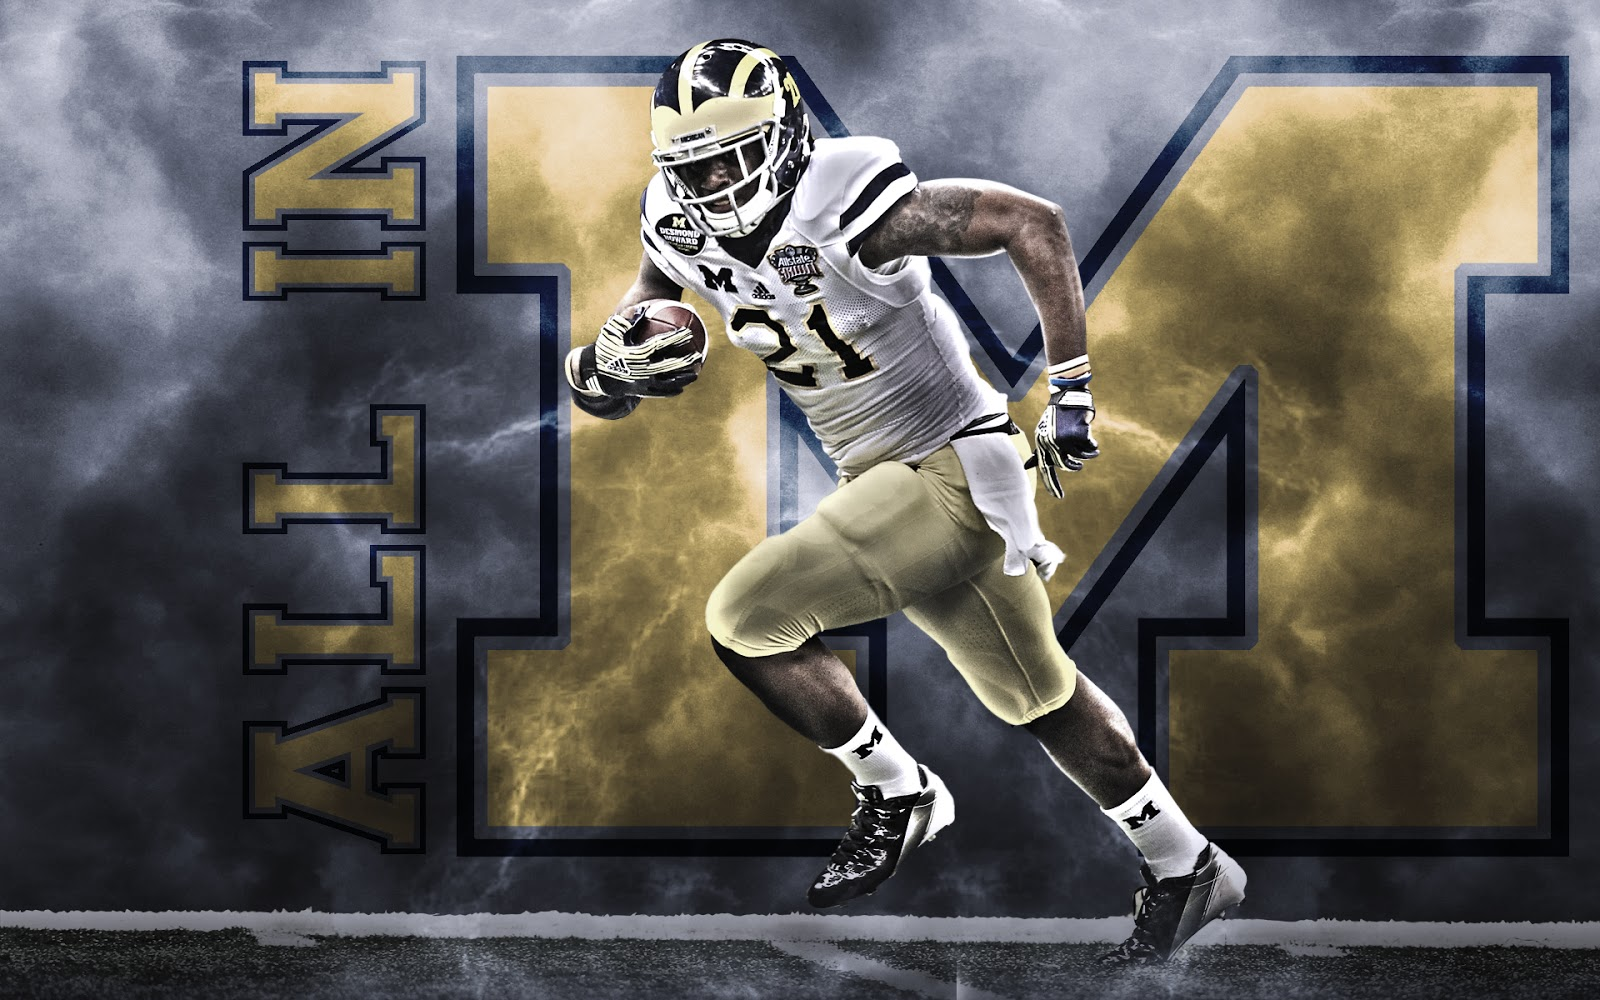 Awesome Michigan Wolverines Wallpaper: Michigan Wolverines